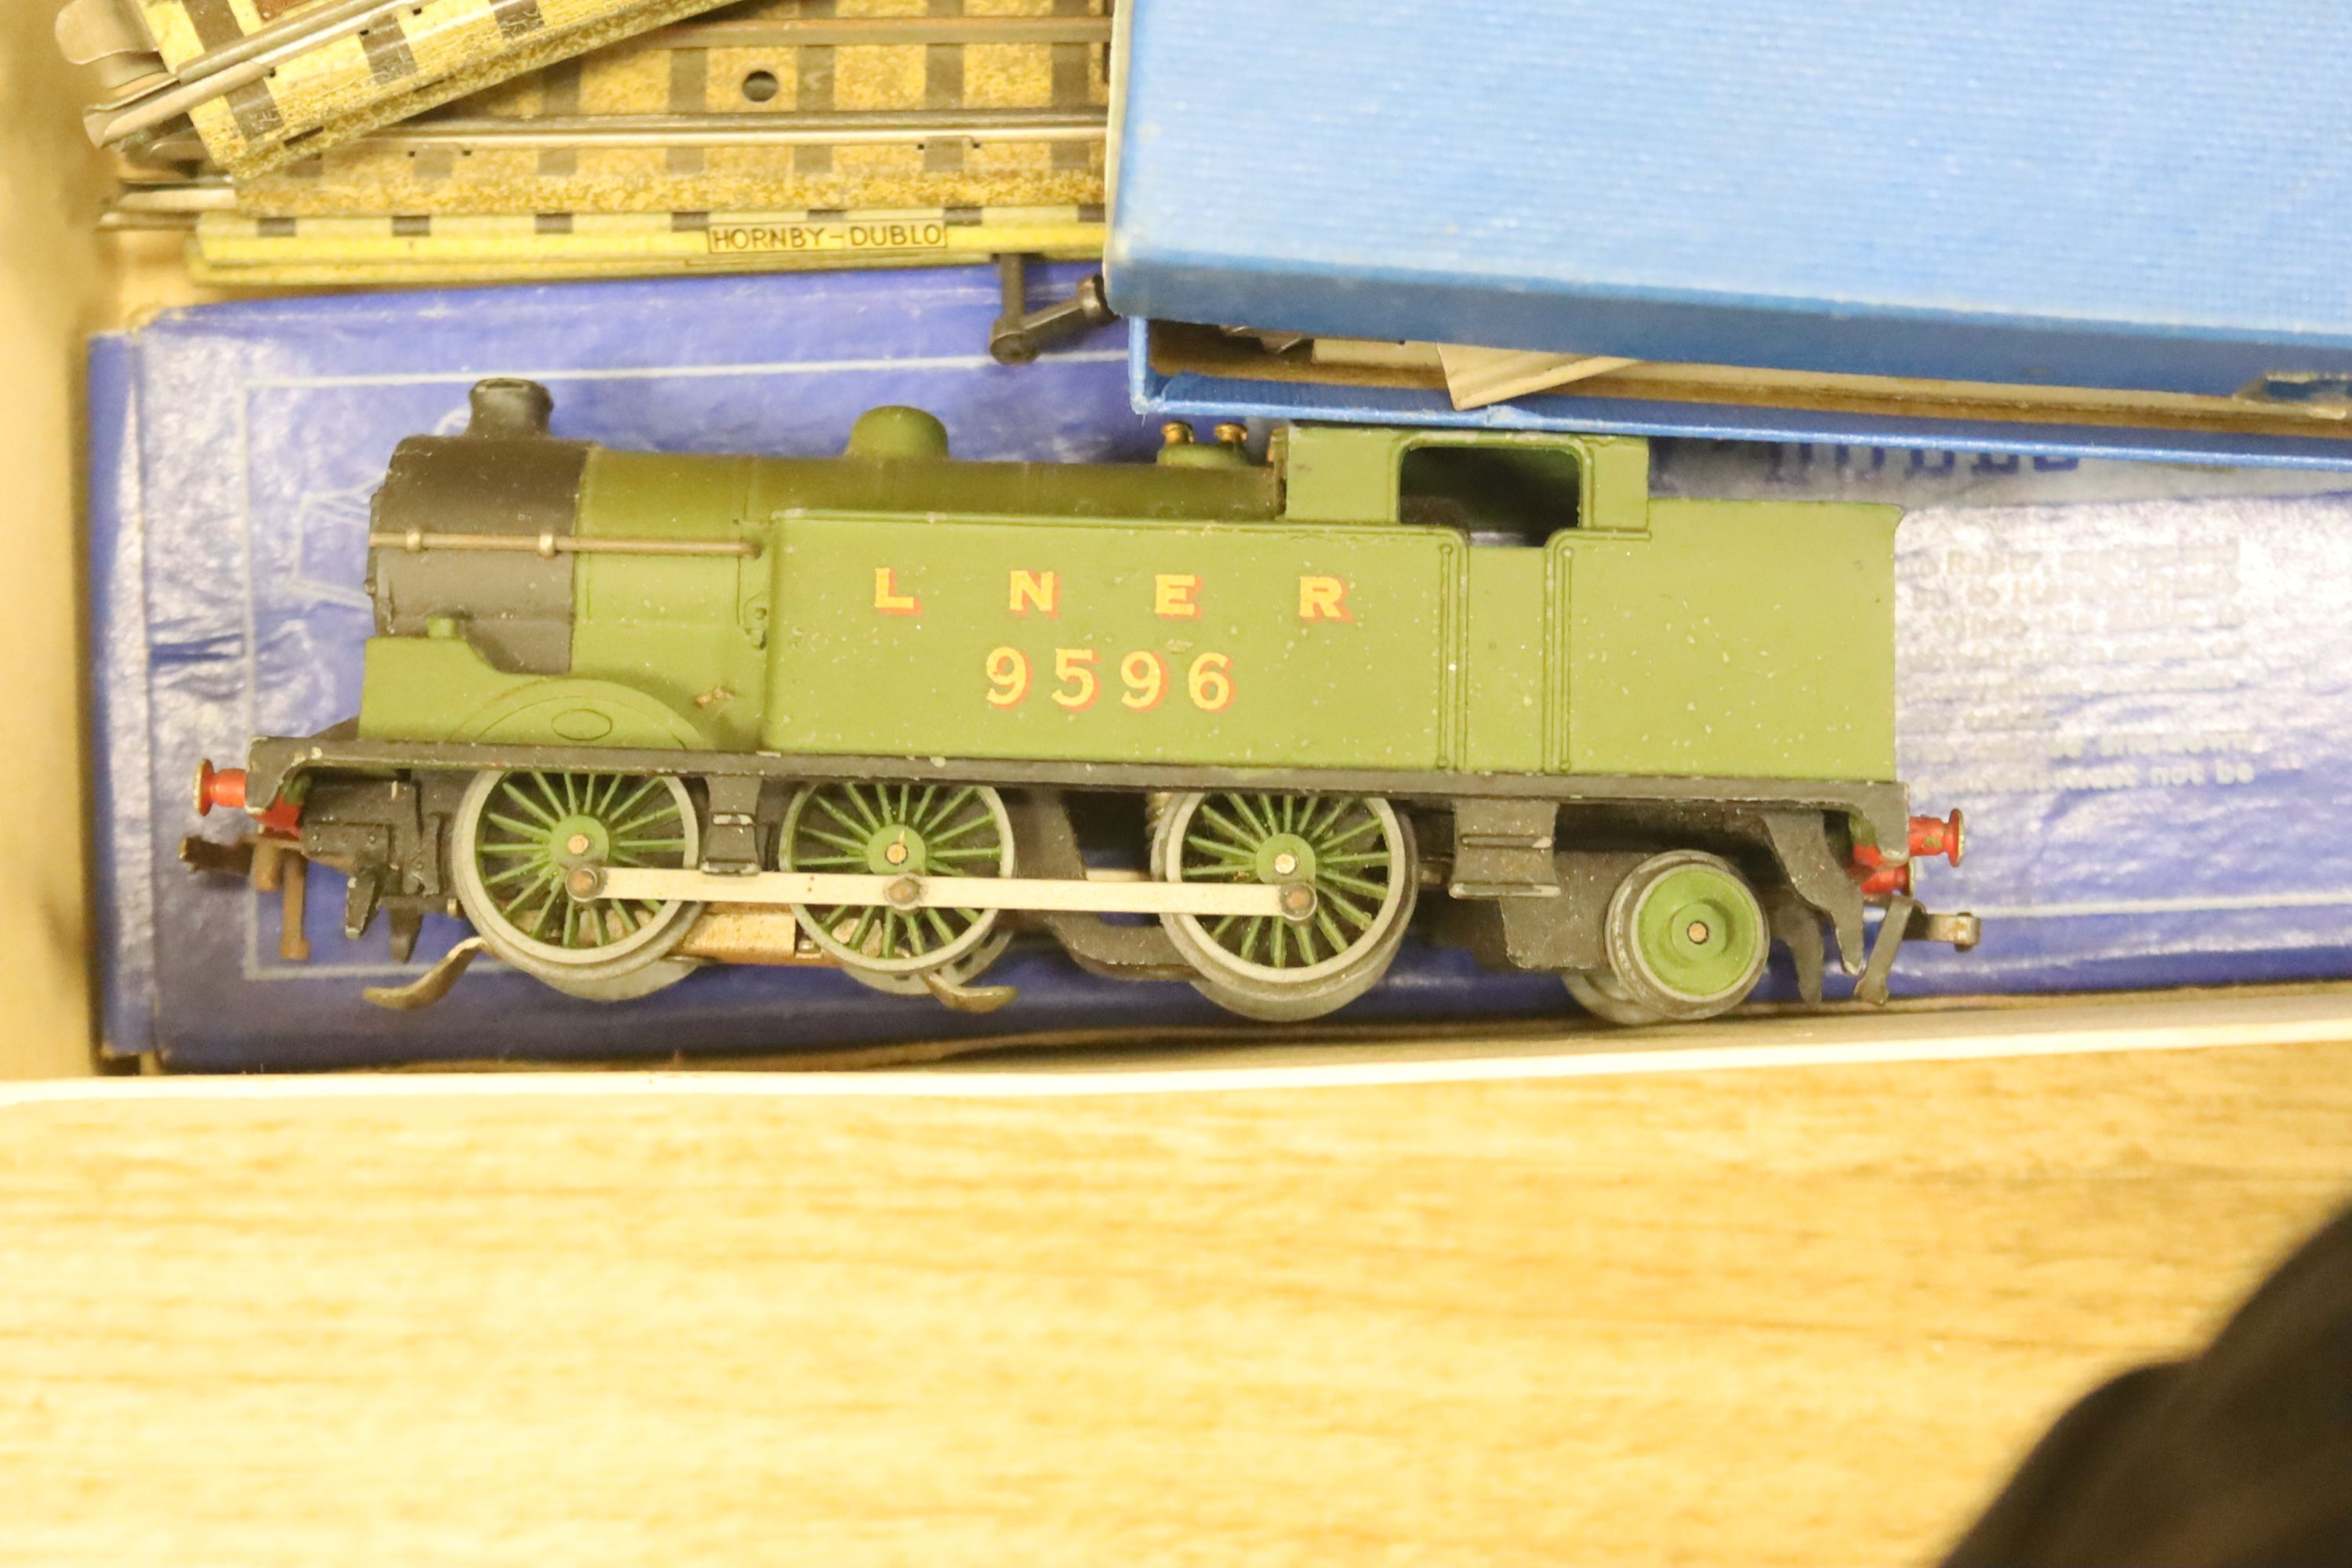 A Hornby Dublo EDG7 tank goods train set, an EDL 18 2-6-4 tank locomotive boxed, one other - Image 4 of 5